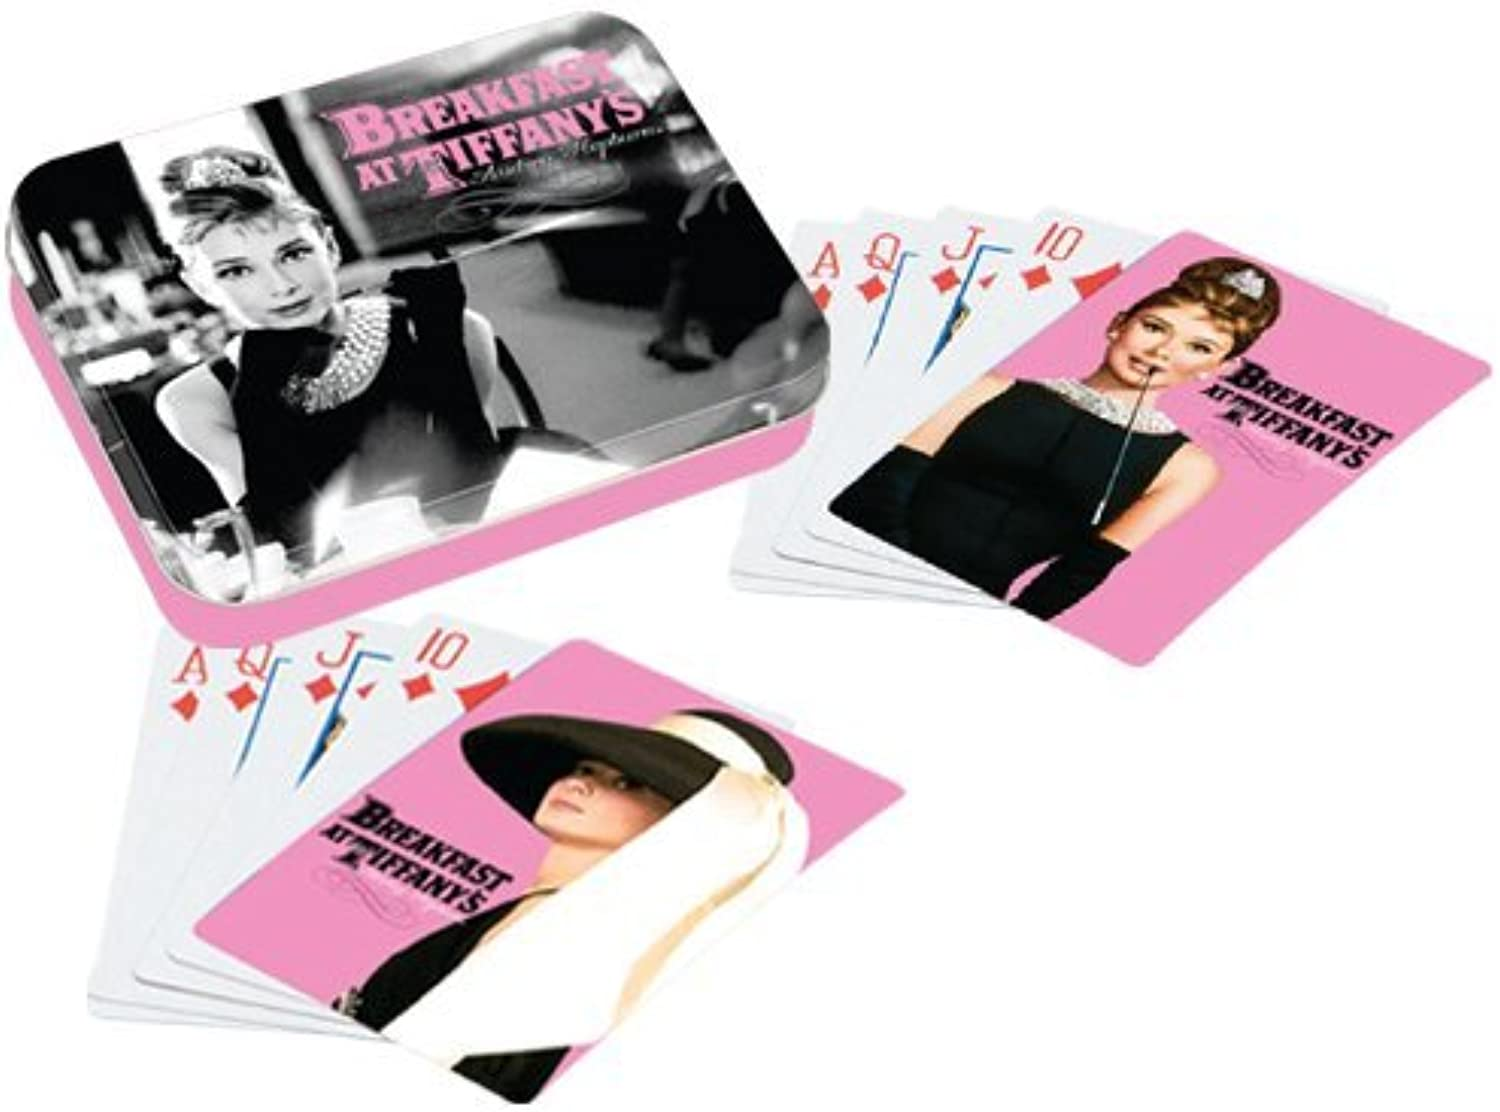 5.5 Inch Audrey Hepburn Collectible Playing Card Gift Set, Black Pink by Vandor